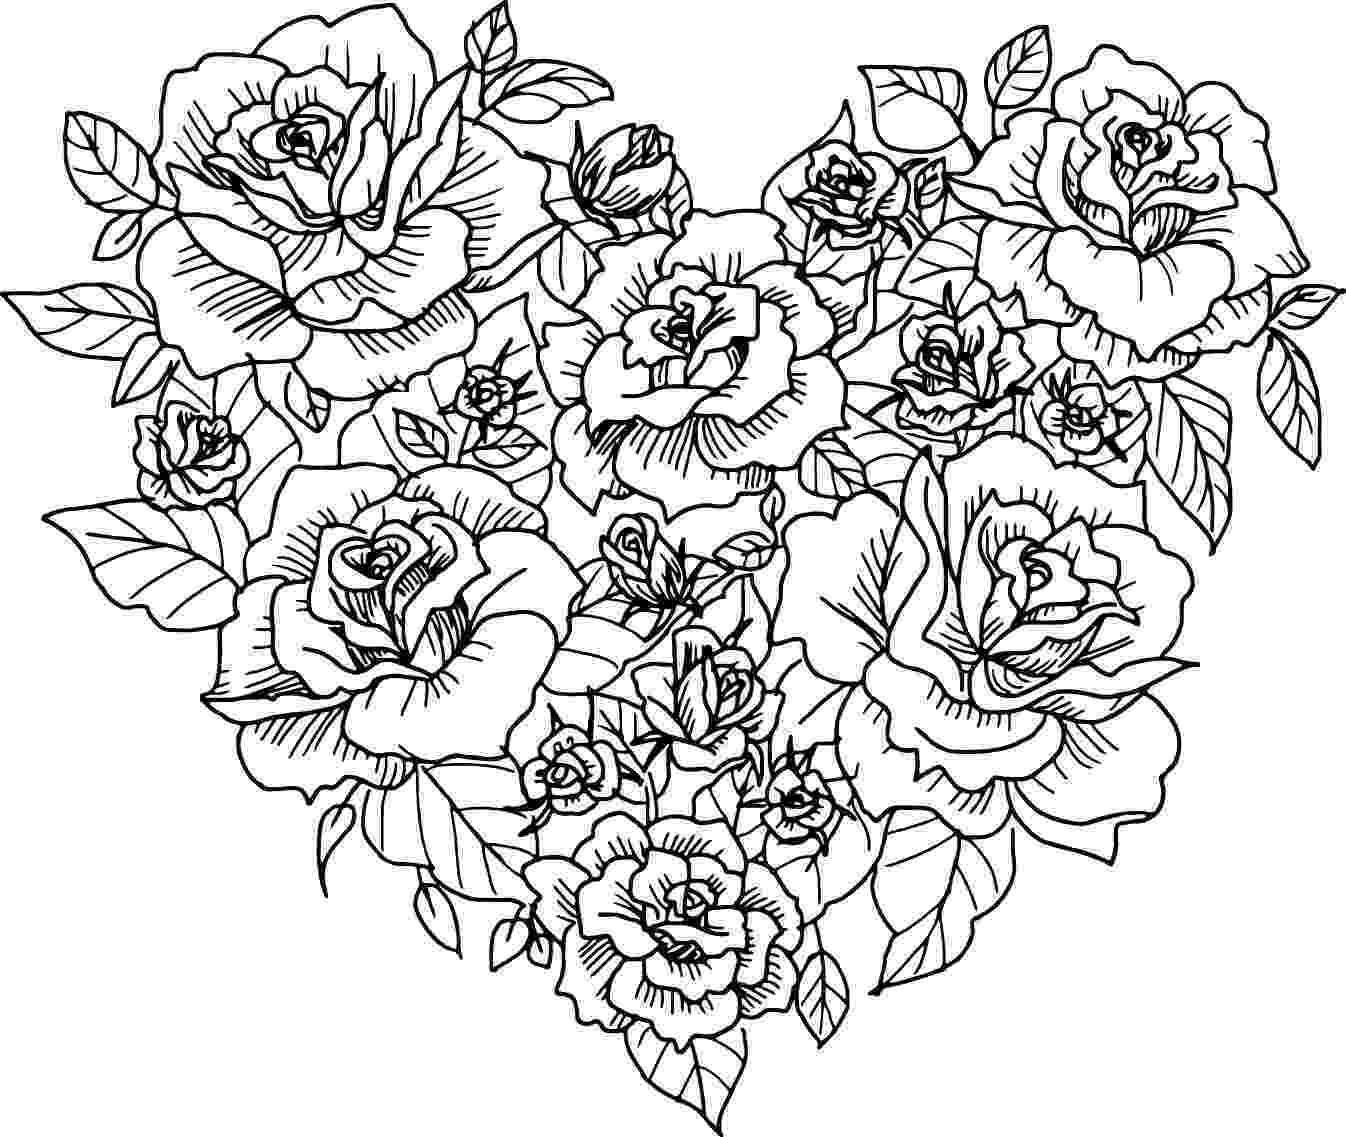 rose coloring pages roses coloring pages to download and print for free coloring pages rose